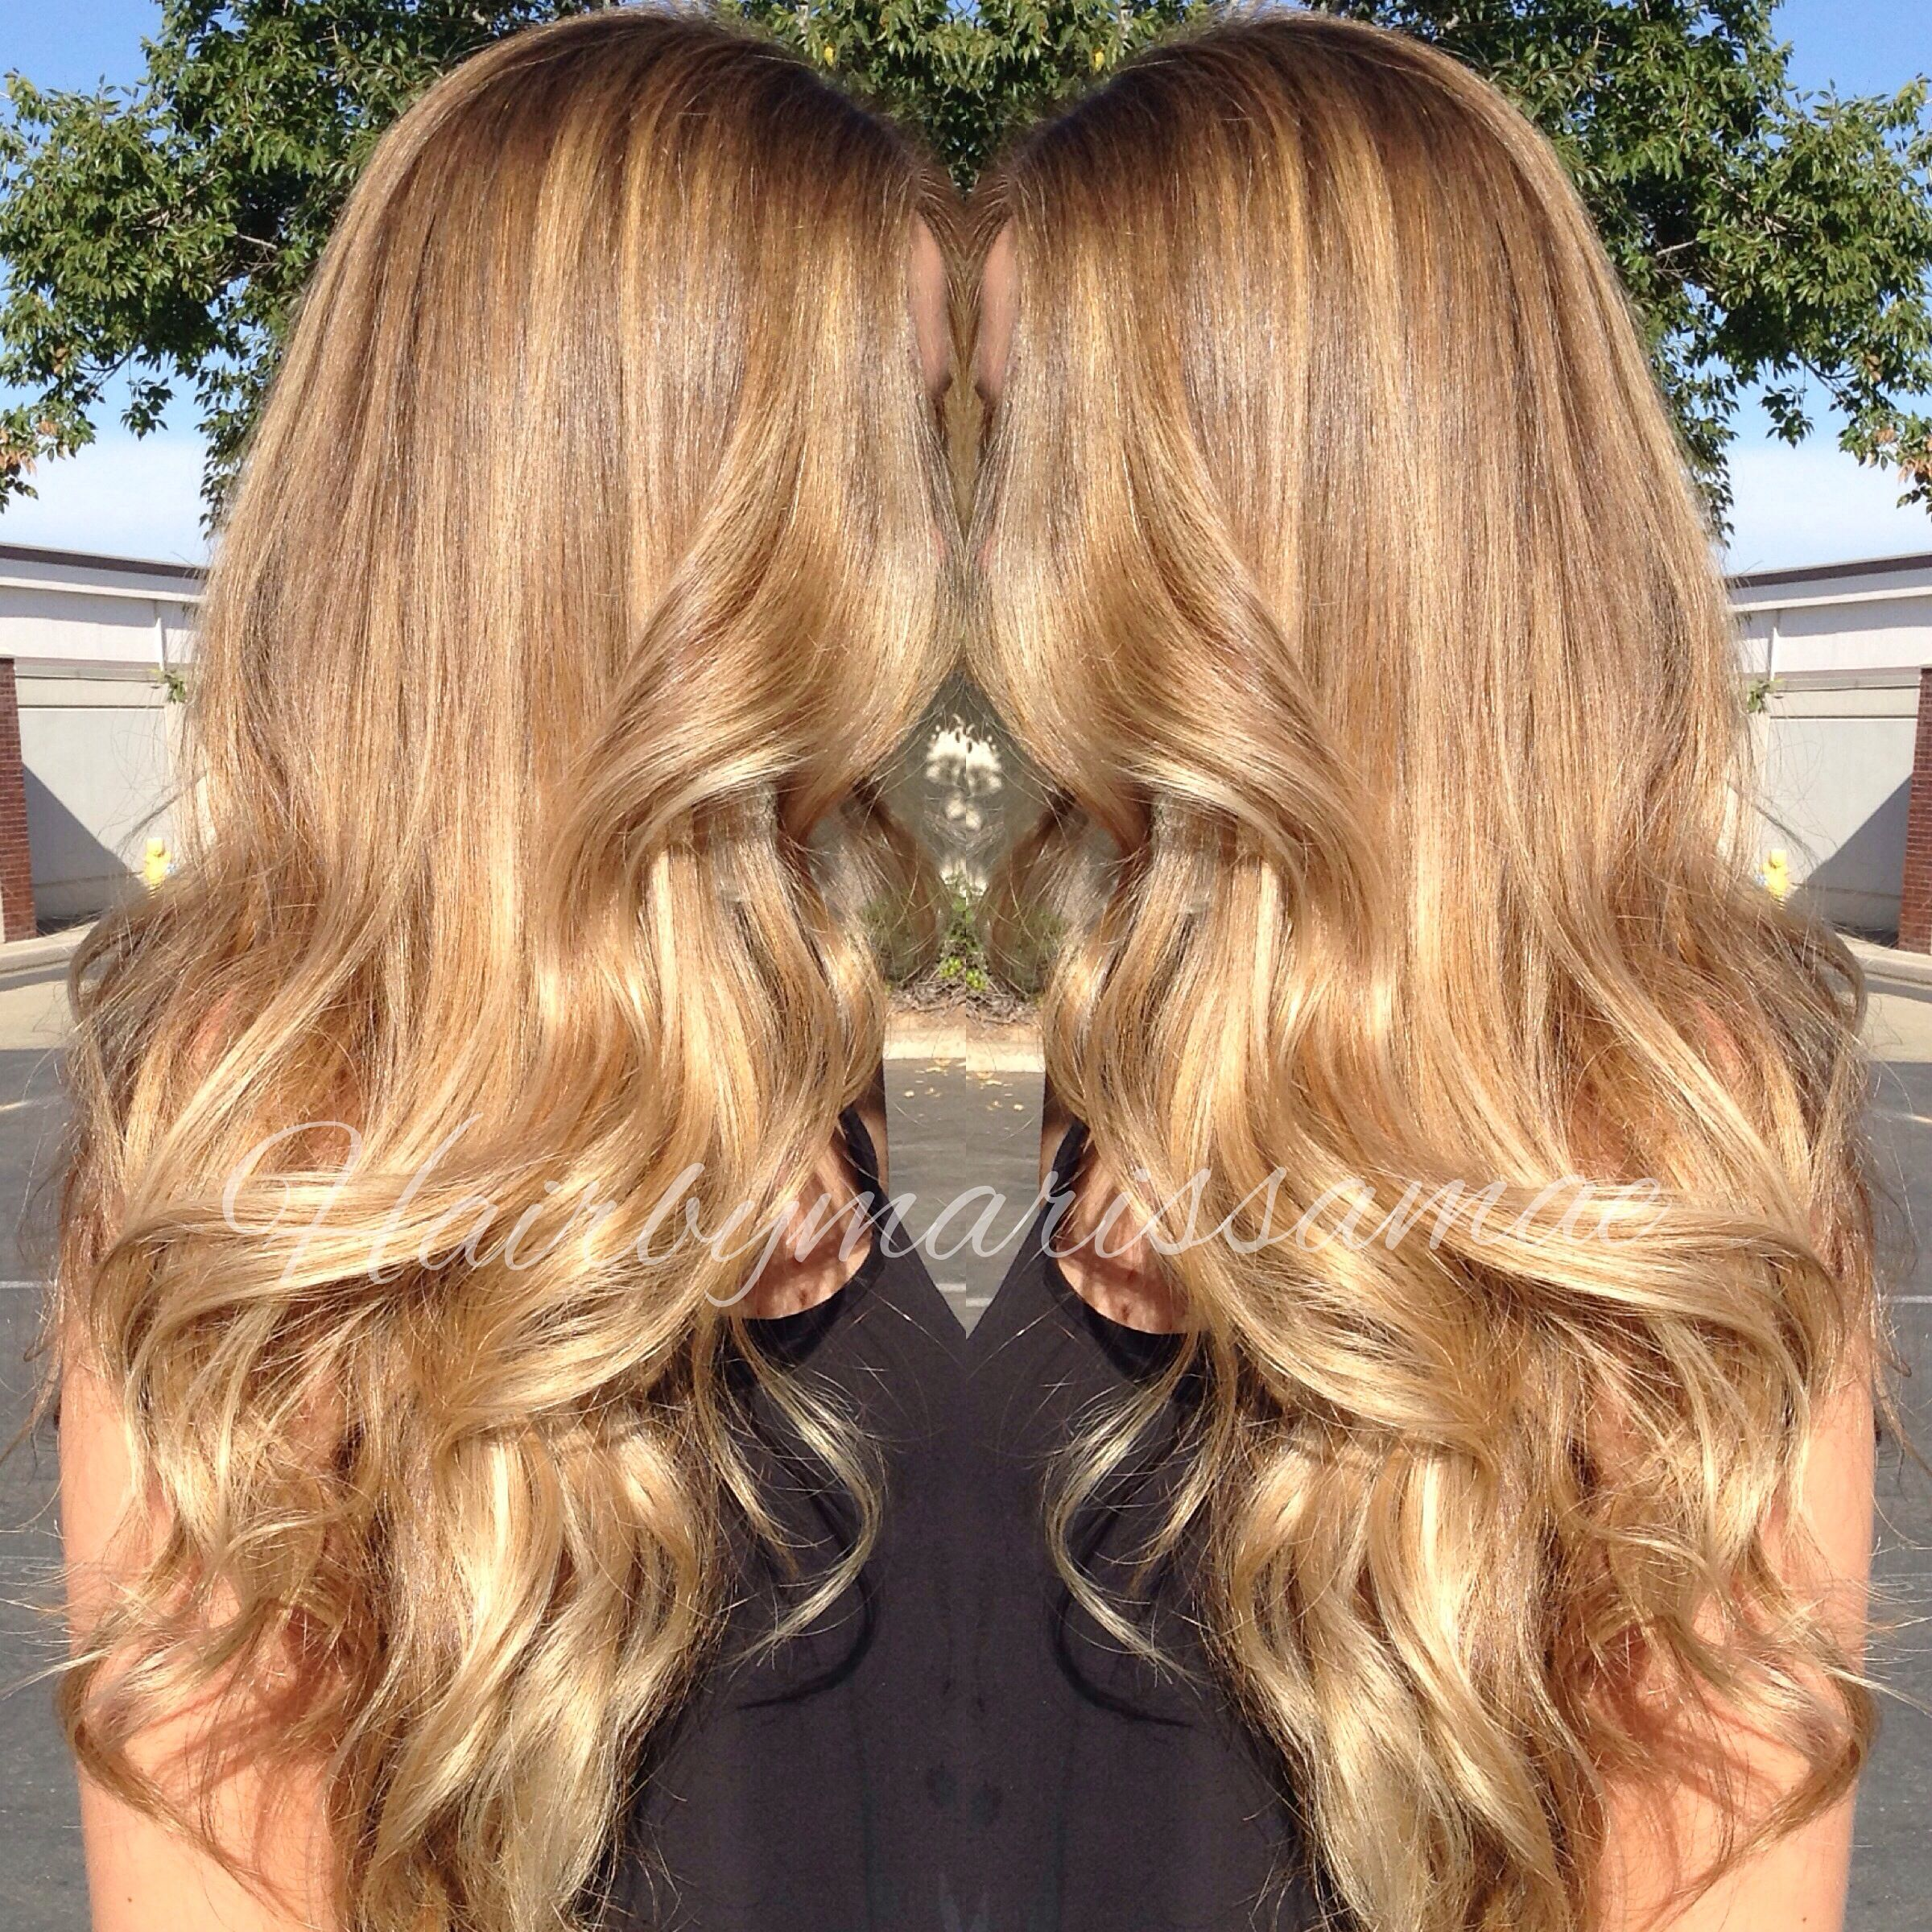 photos blonde hair with gold highlights of androids high quality soft golden balayage highlights my work